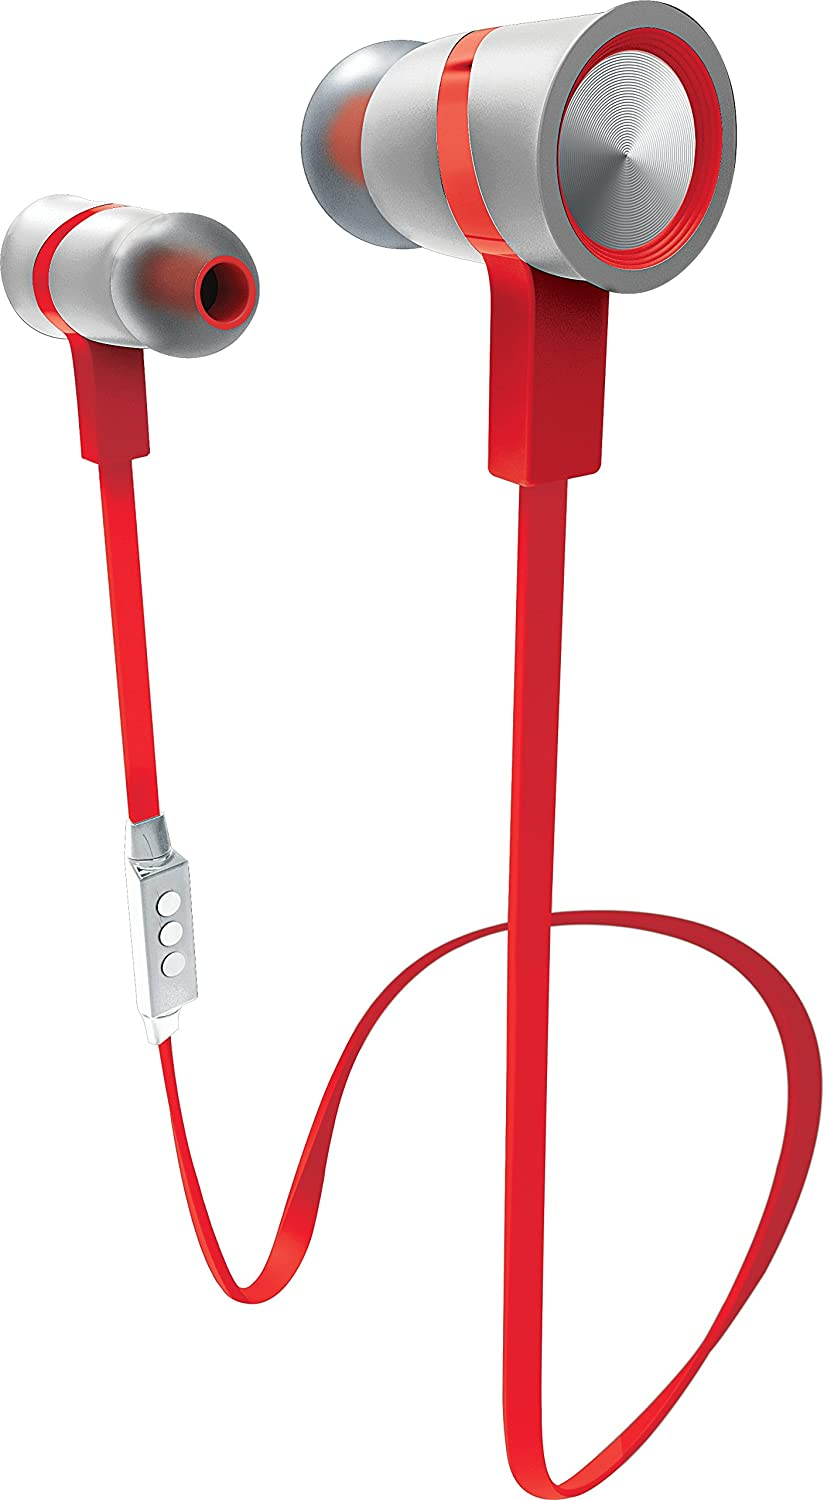 Amazon Com Sharper Image Sbt517whrd Premium Bluetooth Earbuds With Mic White Red Home Audio Theater